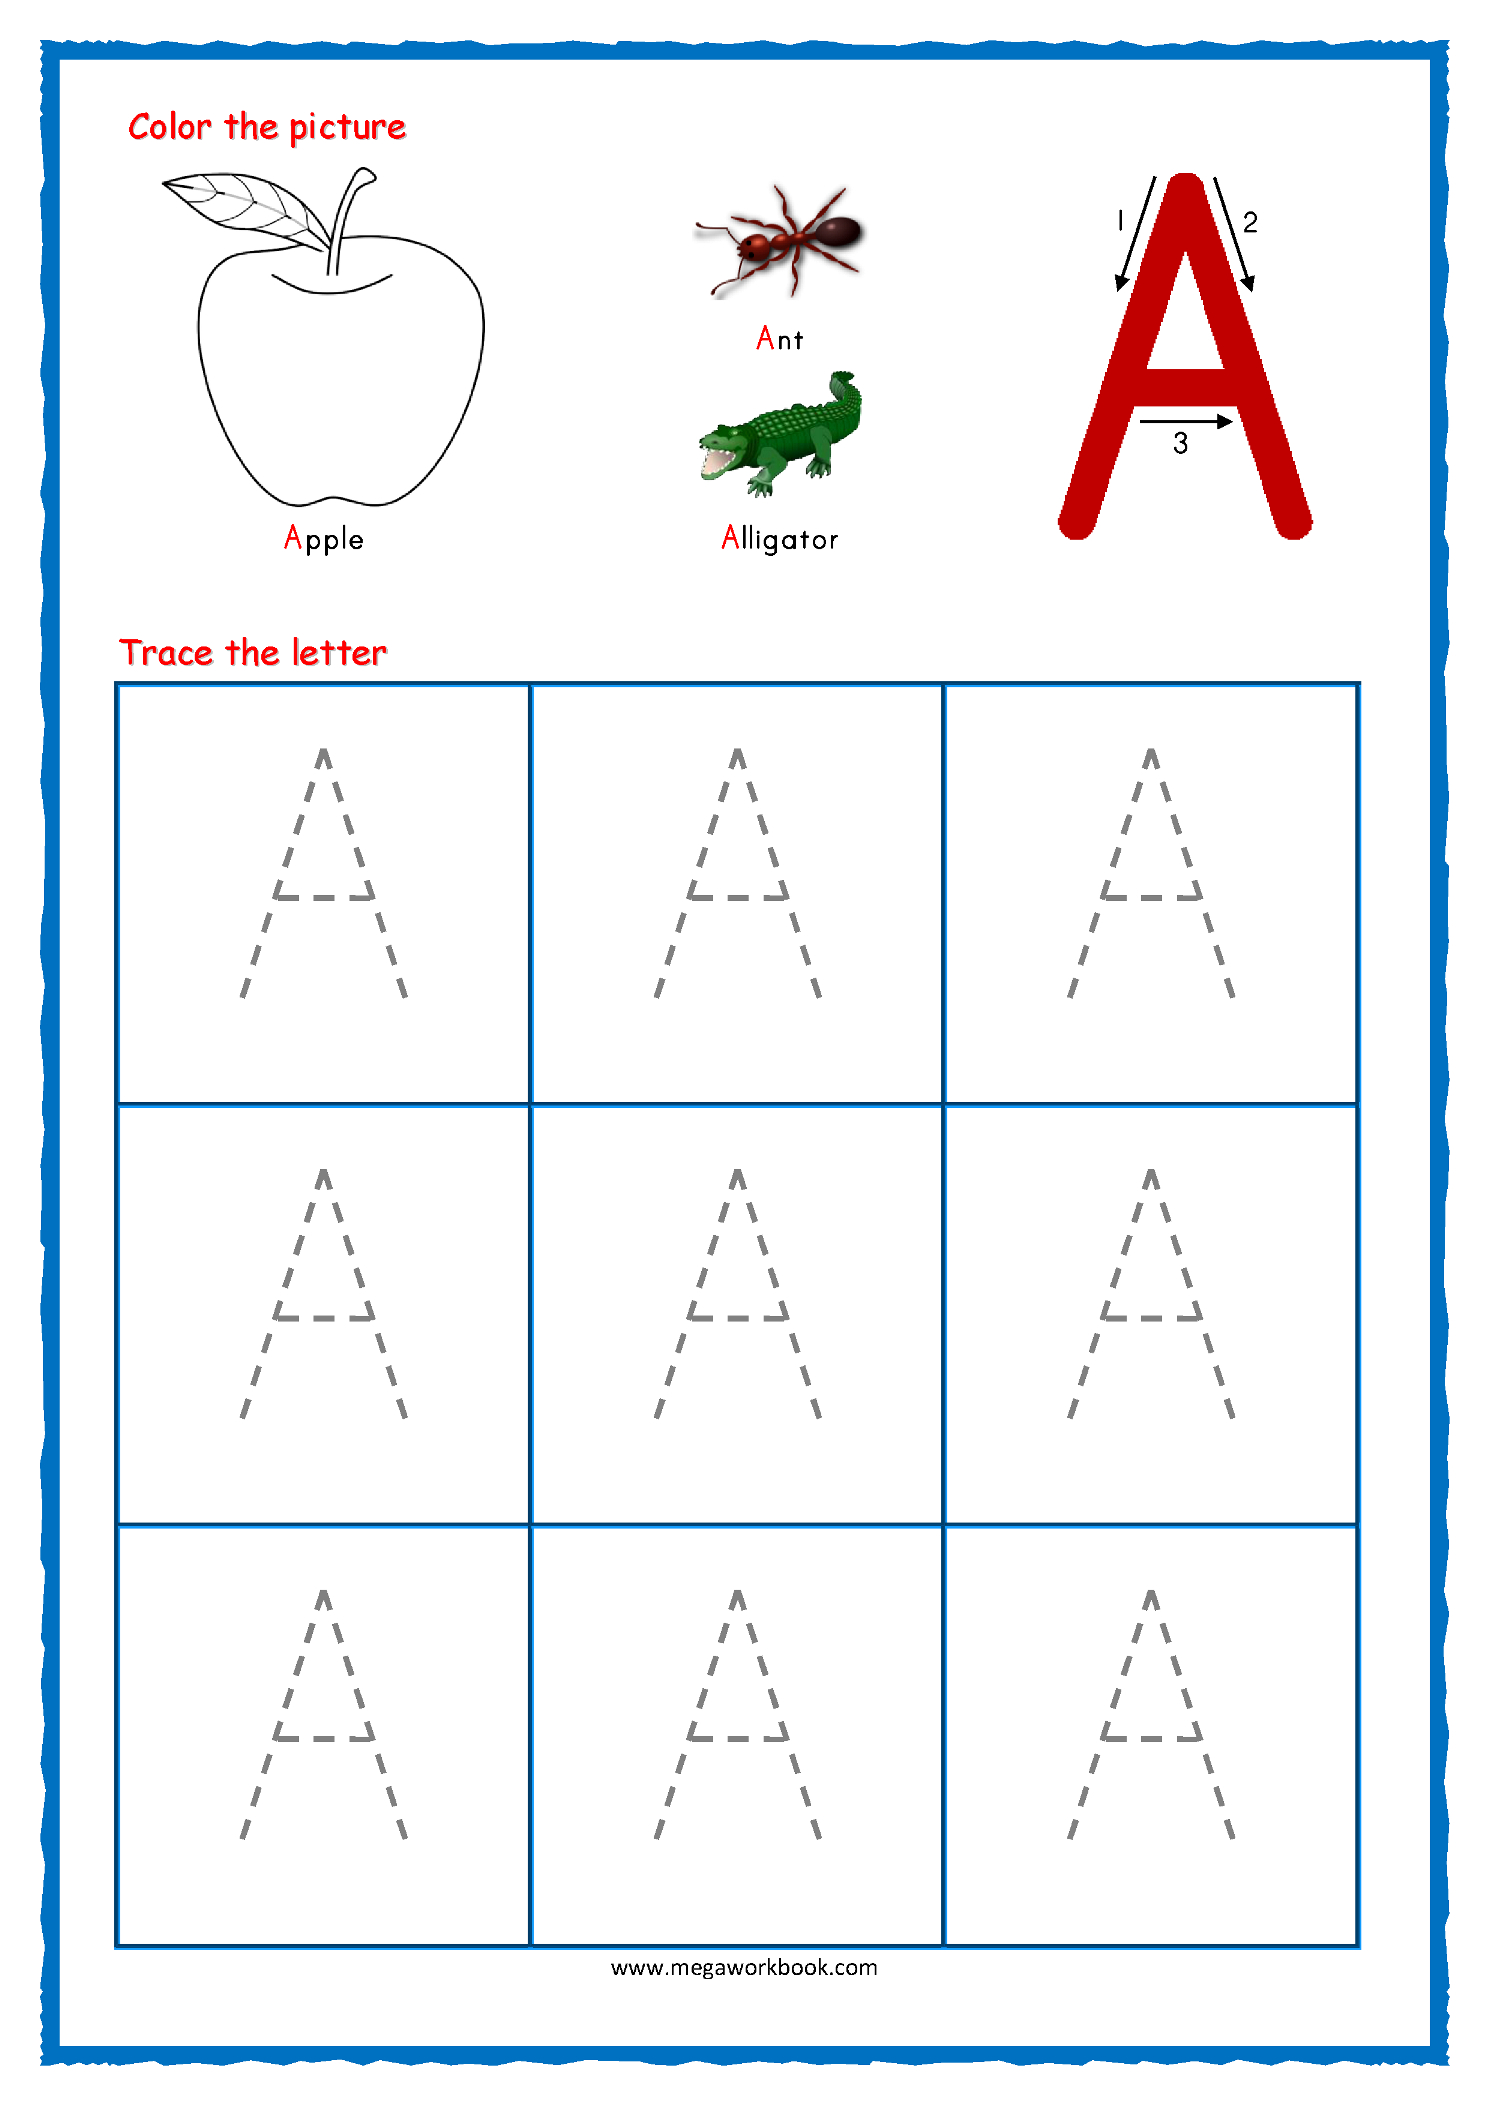 Tracing Letters - Alphabet Tracing - Capital Letters intended for Name Tracing Beginner